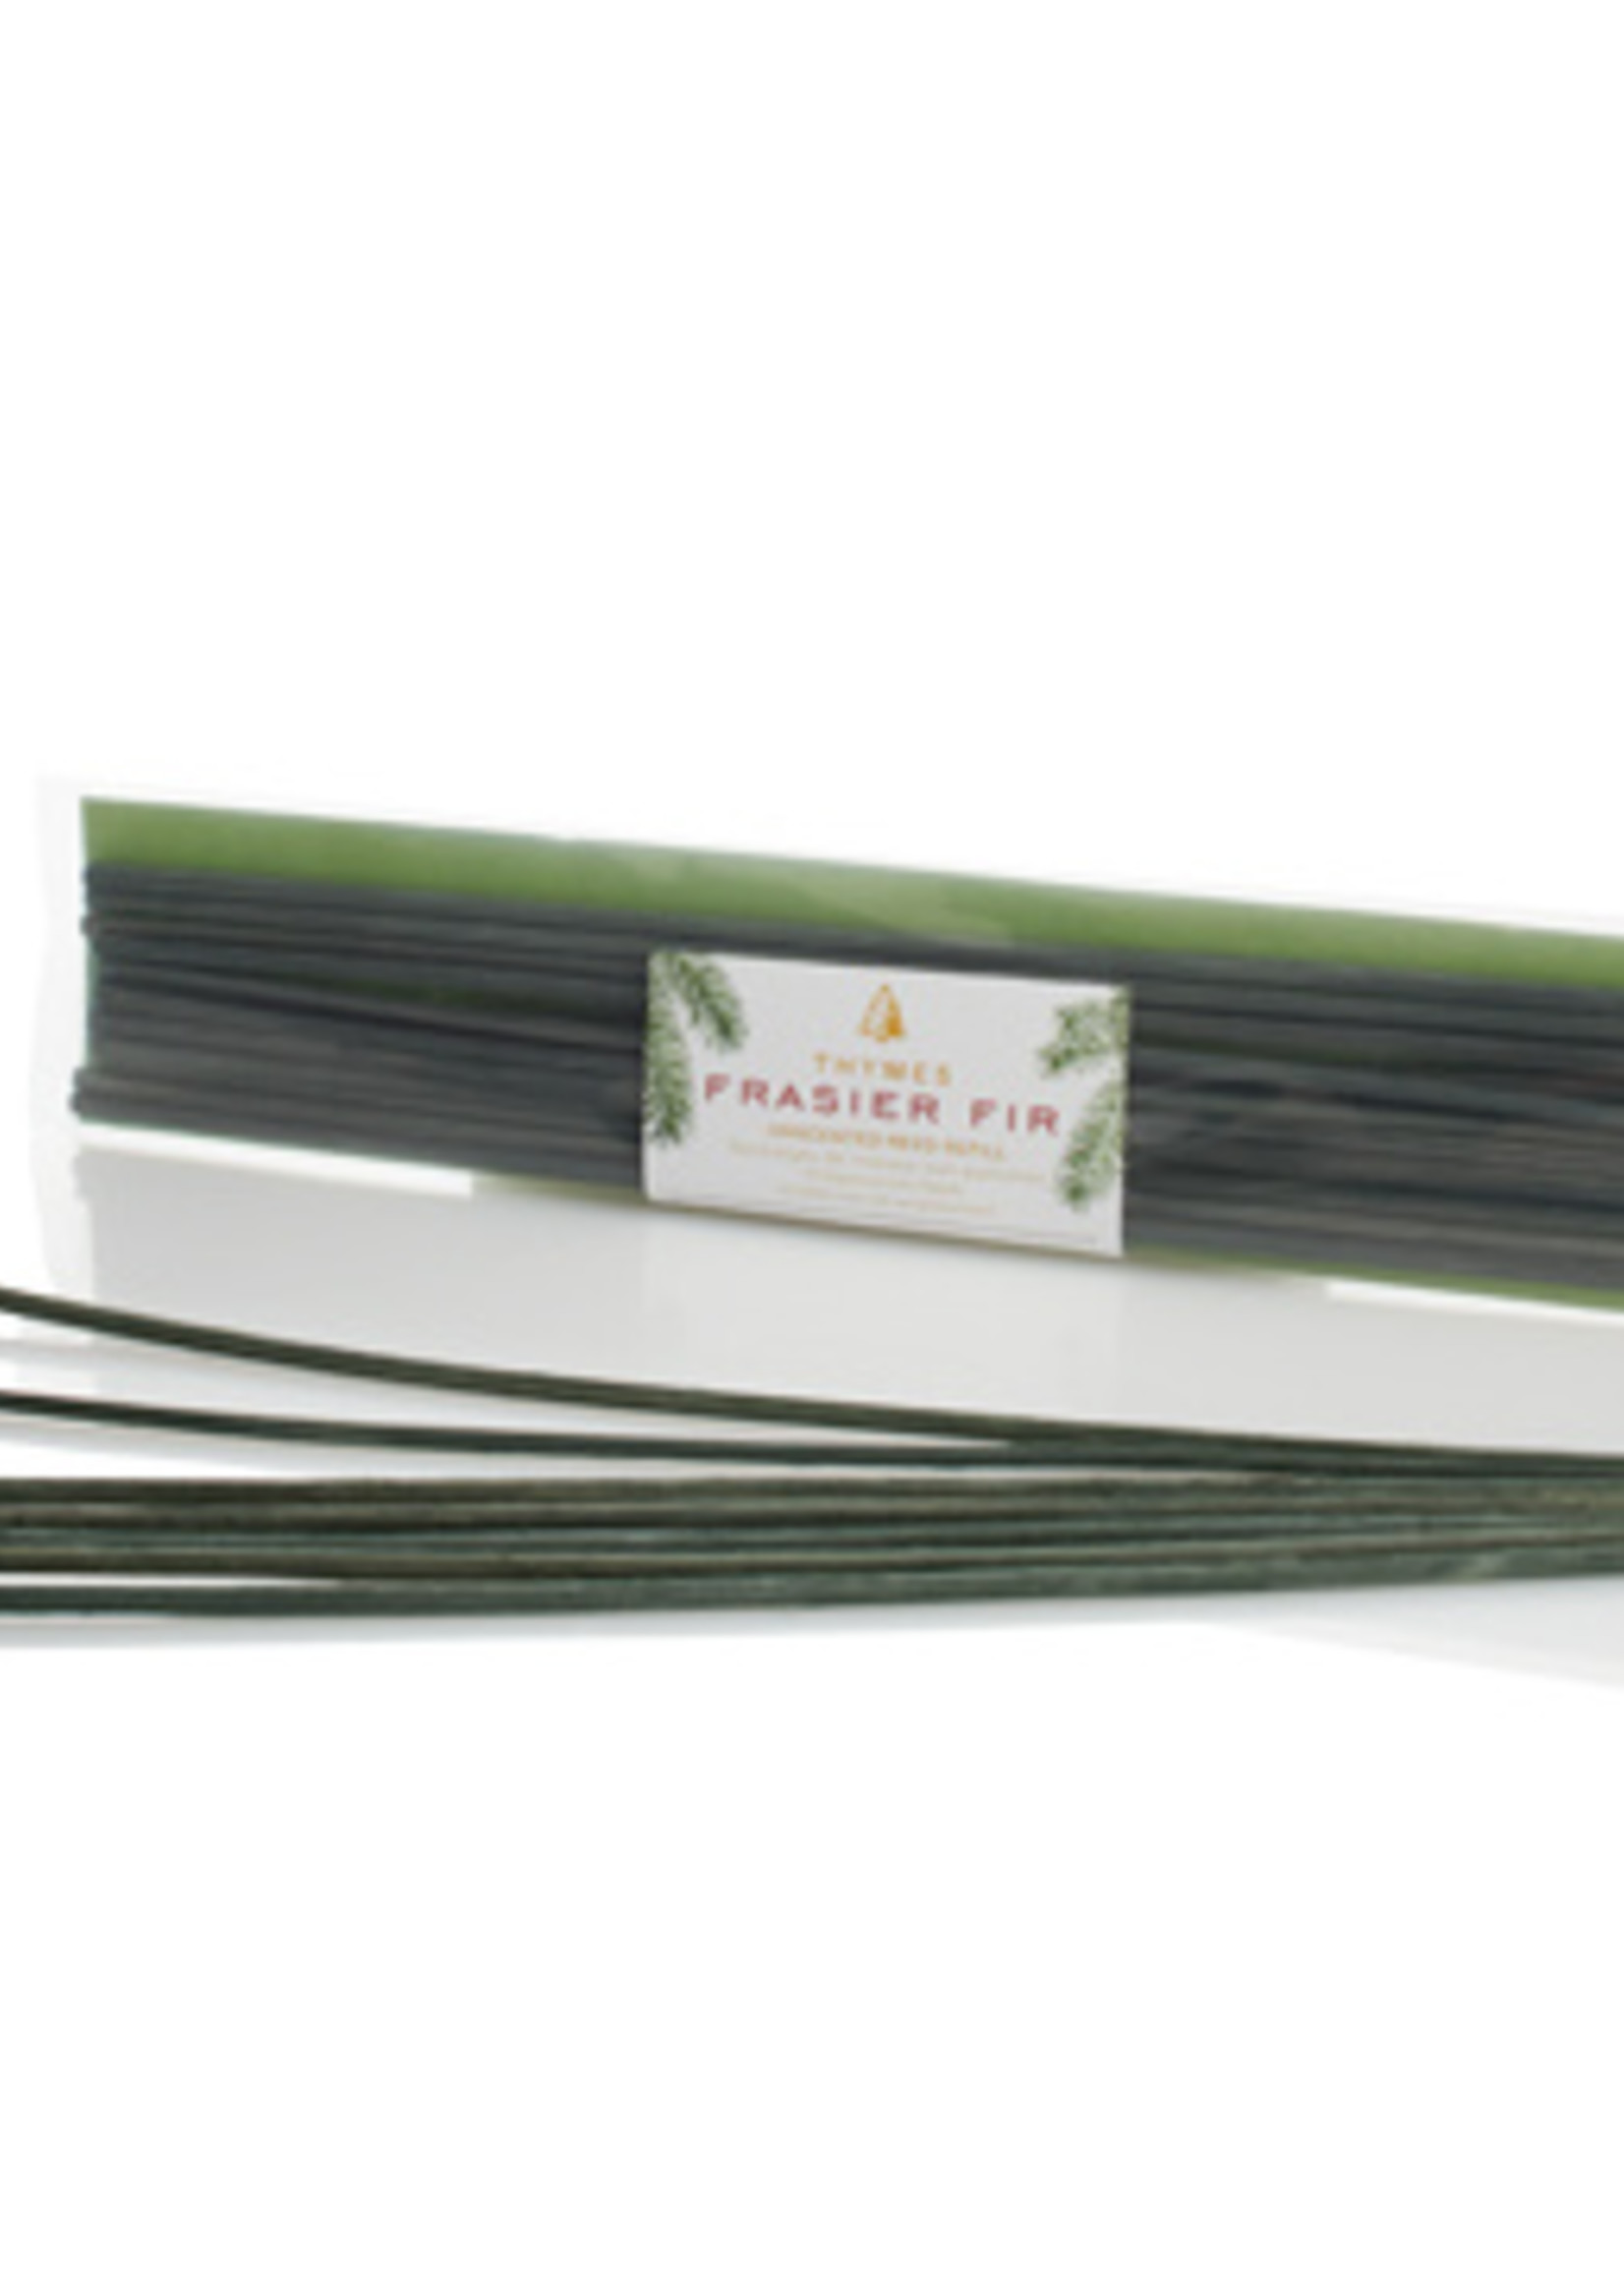 Frasier Fir Diffuser REEDS Green Unscented 14 reed replacements